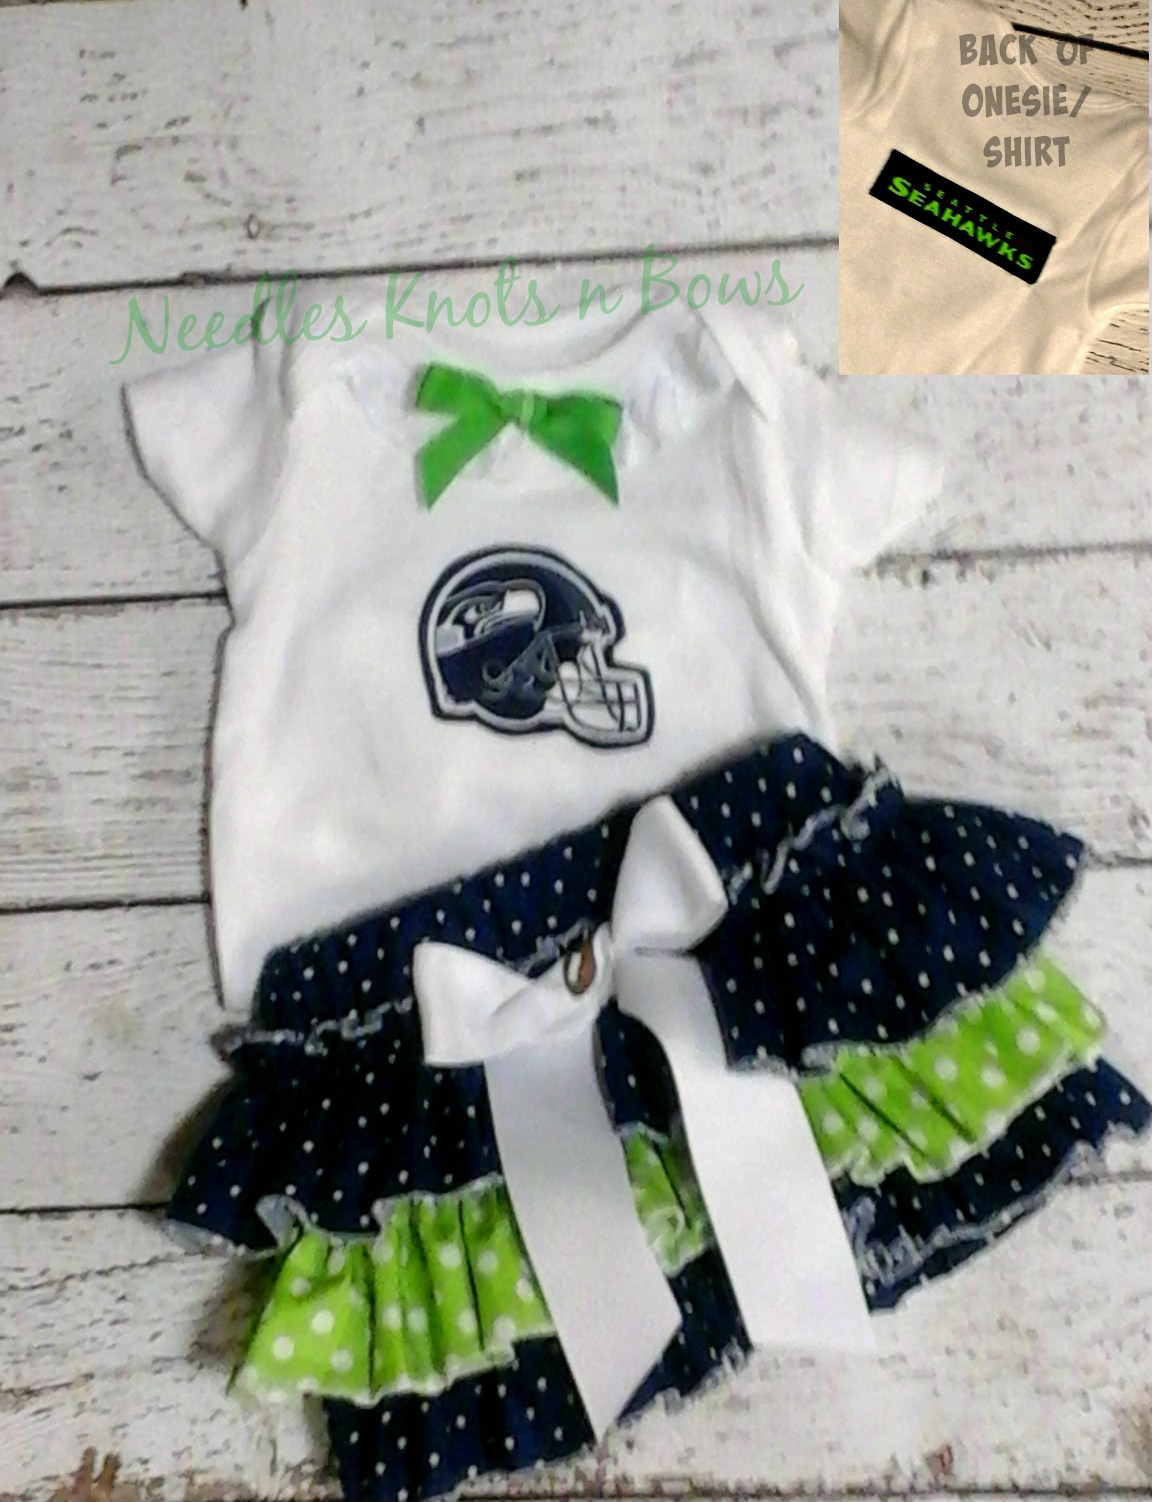 best service a448a 14b46 Girls Seattle Seahawks Cheerleader Outfits, Baby Girls Seahawks Football  Outfit, Baby Shower Gift, Toddlers Football Outfit, Gift Idea from Needles  ...